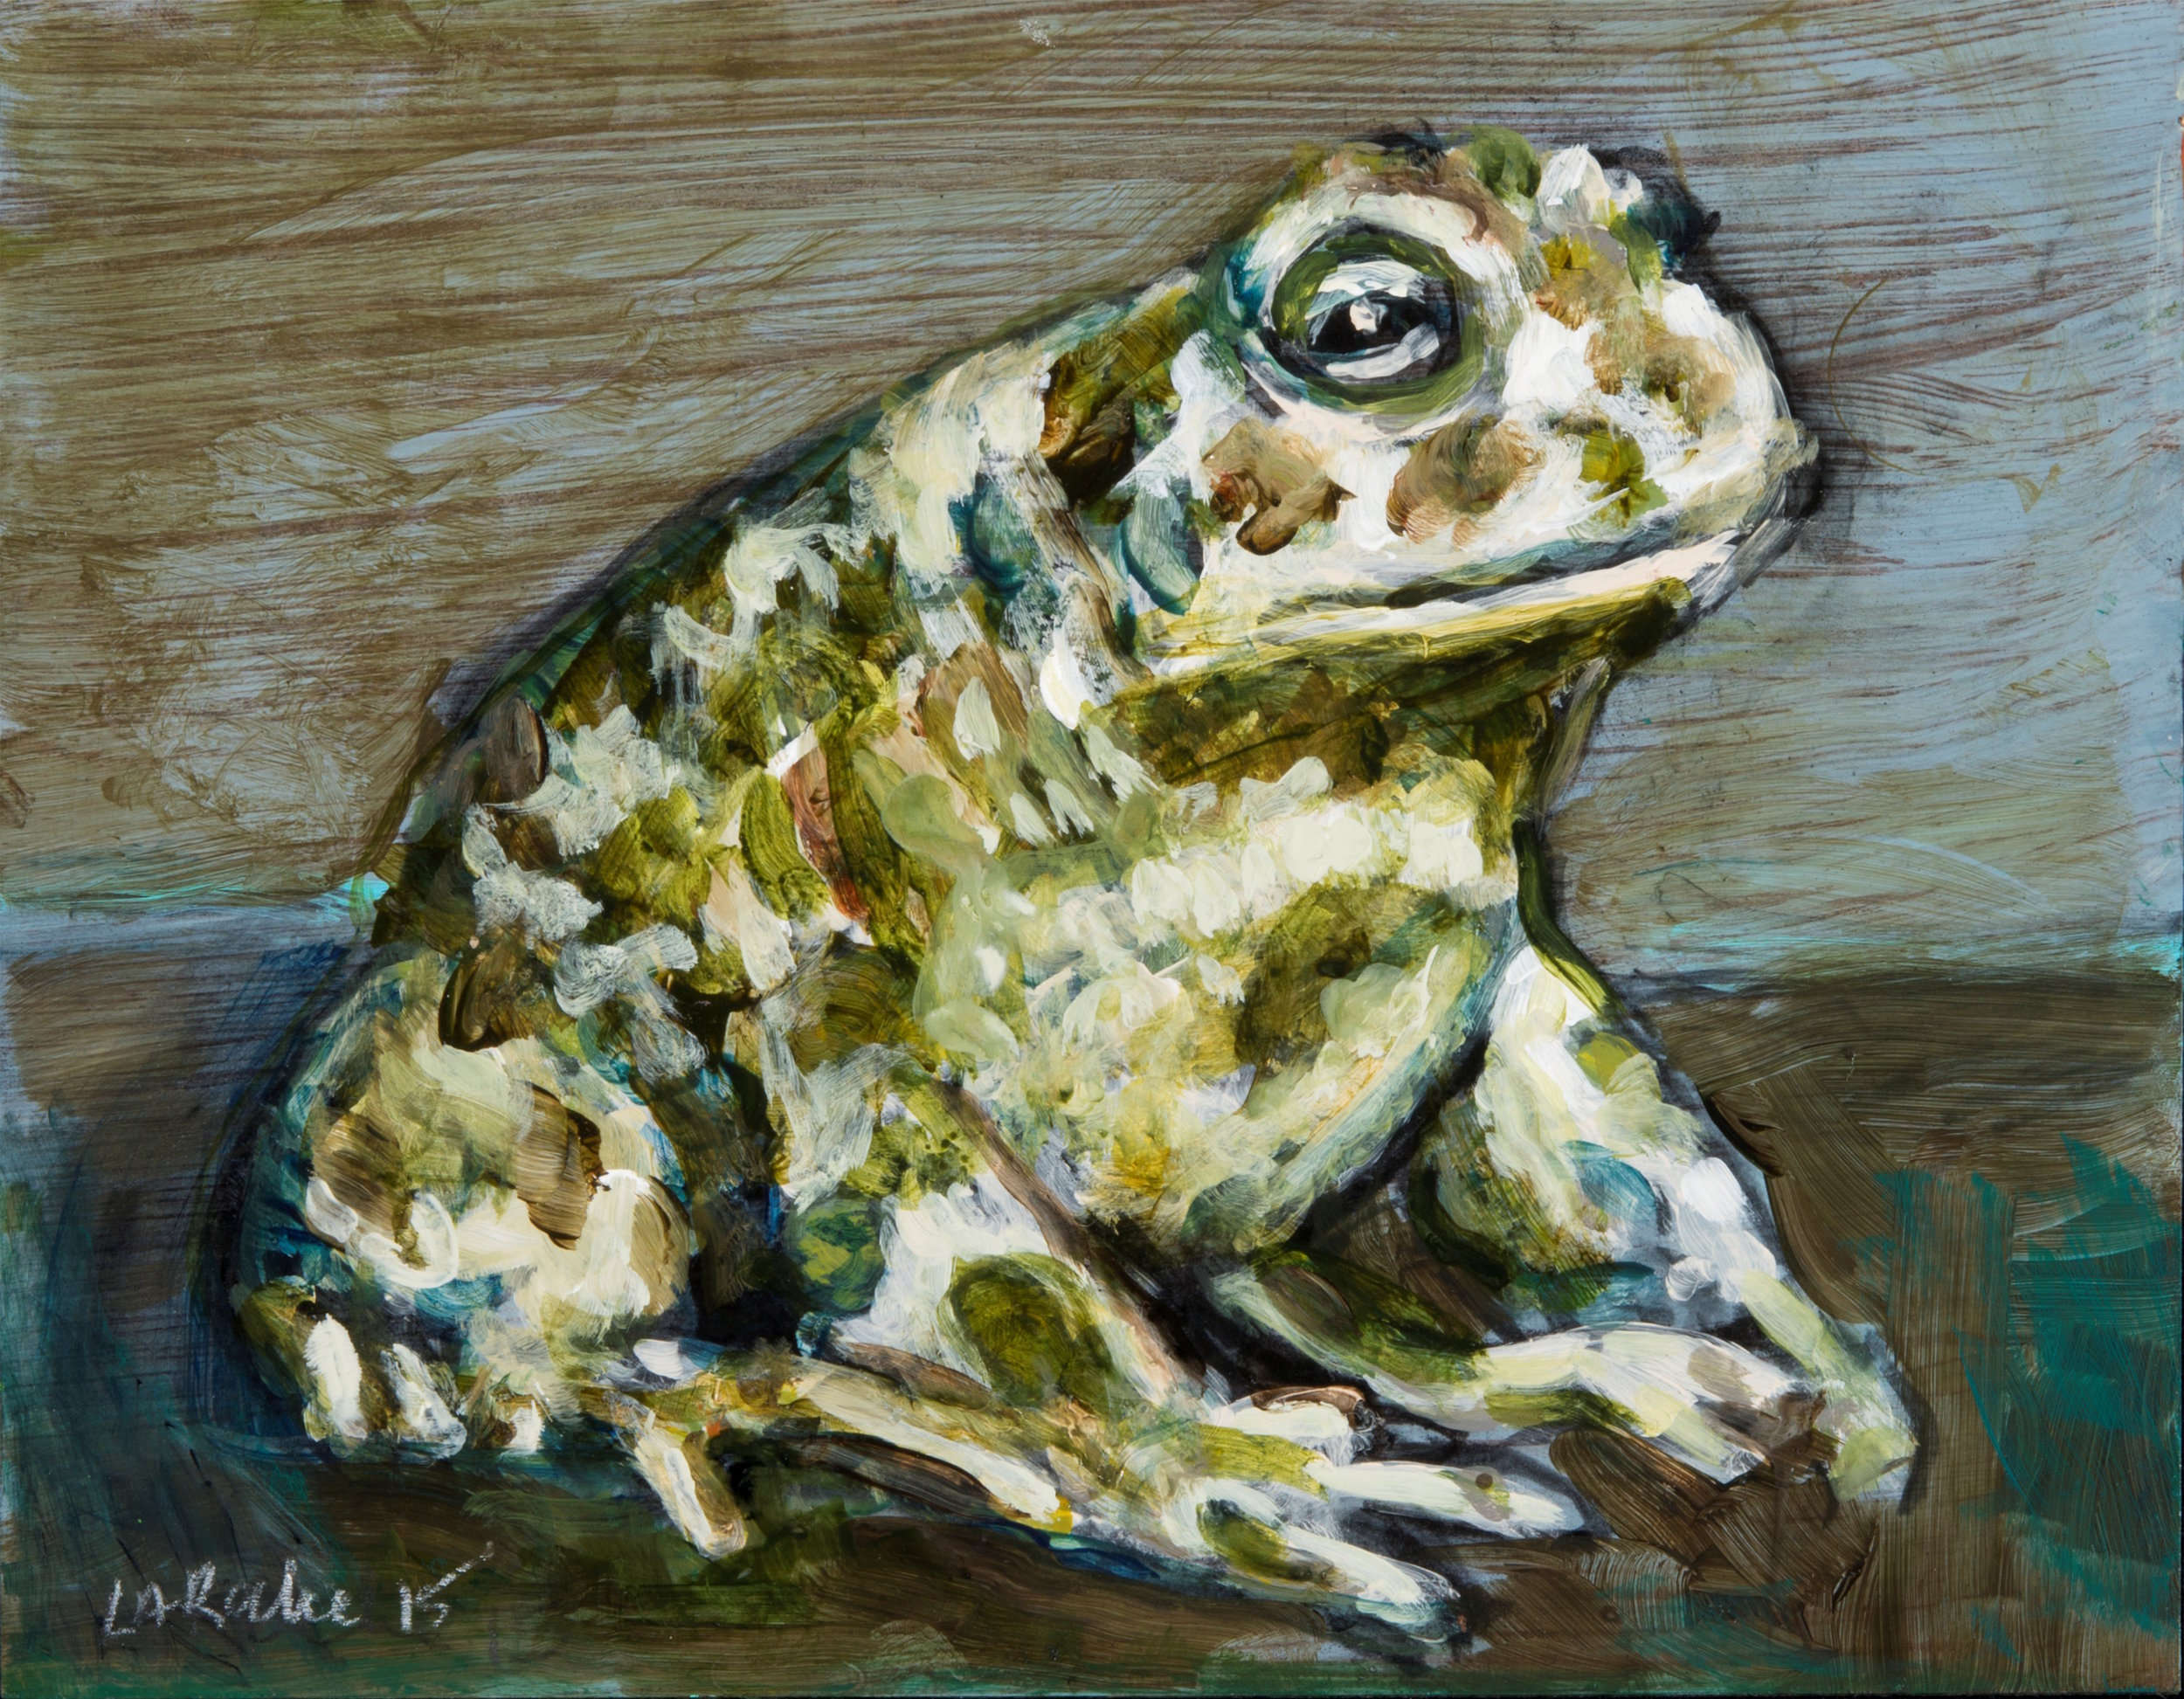 Prince Charming: I am not a frog  (ode to Aldwyth) IV